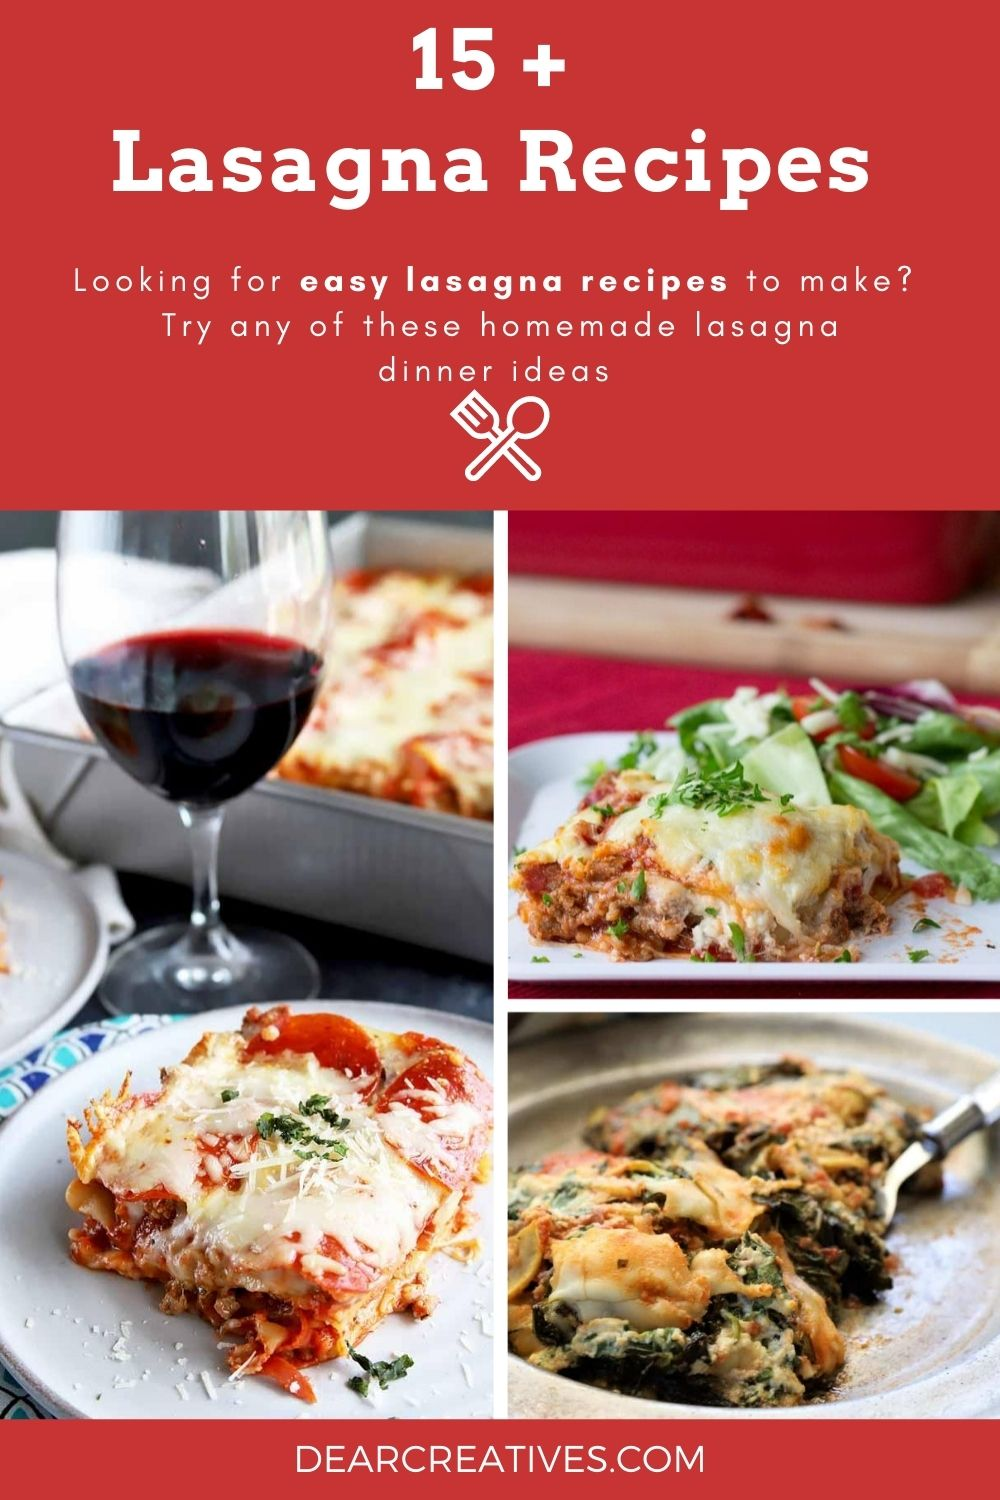 15 + Lasagna Recipes - Lasagna casseroles are comfort food, heroes. Noodles, Sauce, Cheese and every bite is so good!...DearCreatives.com #lasagnarecipes #recipesforlasagna #dearcreatives